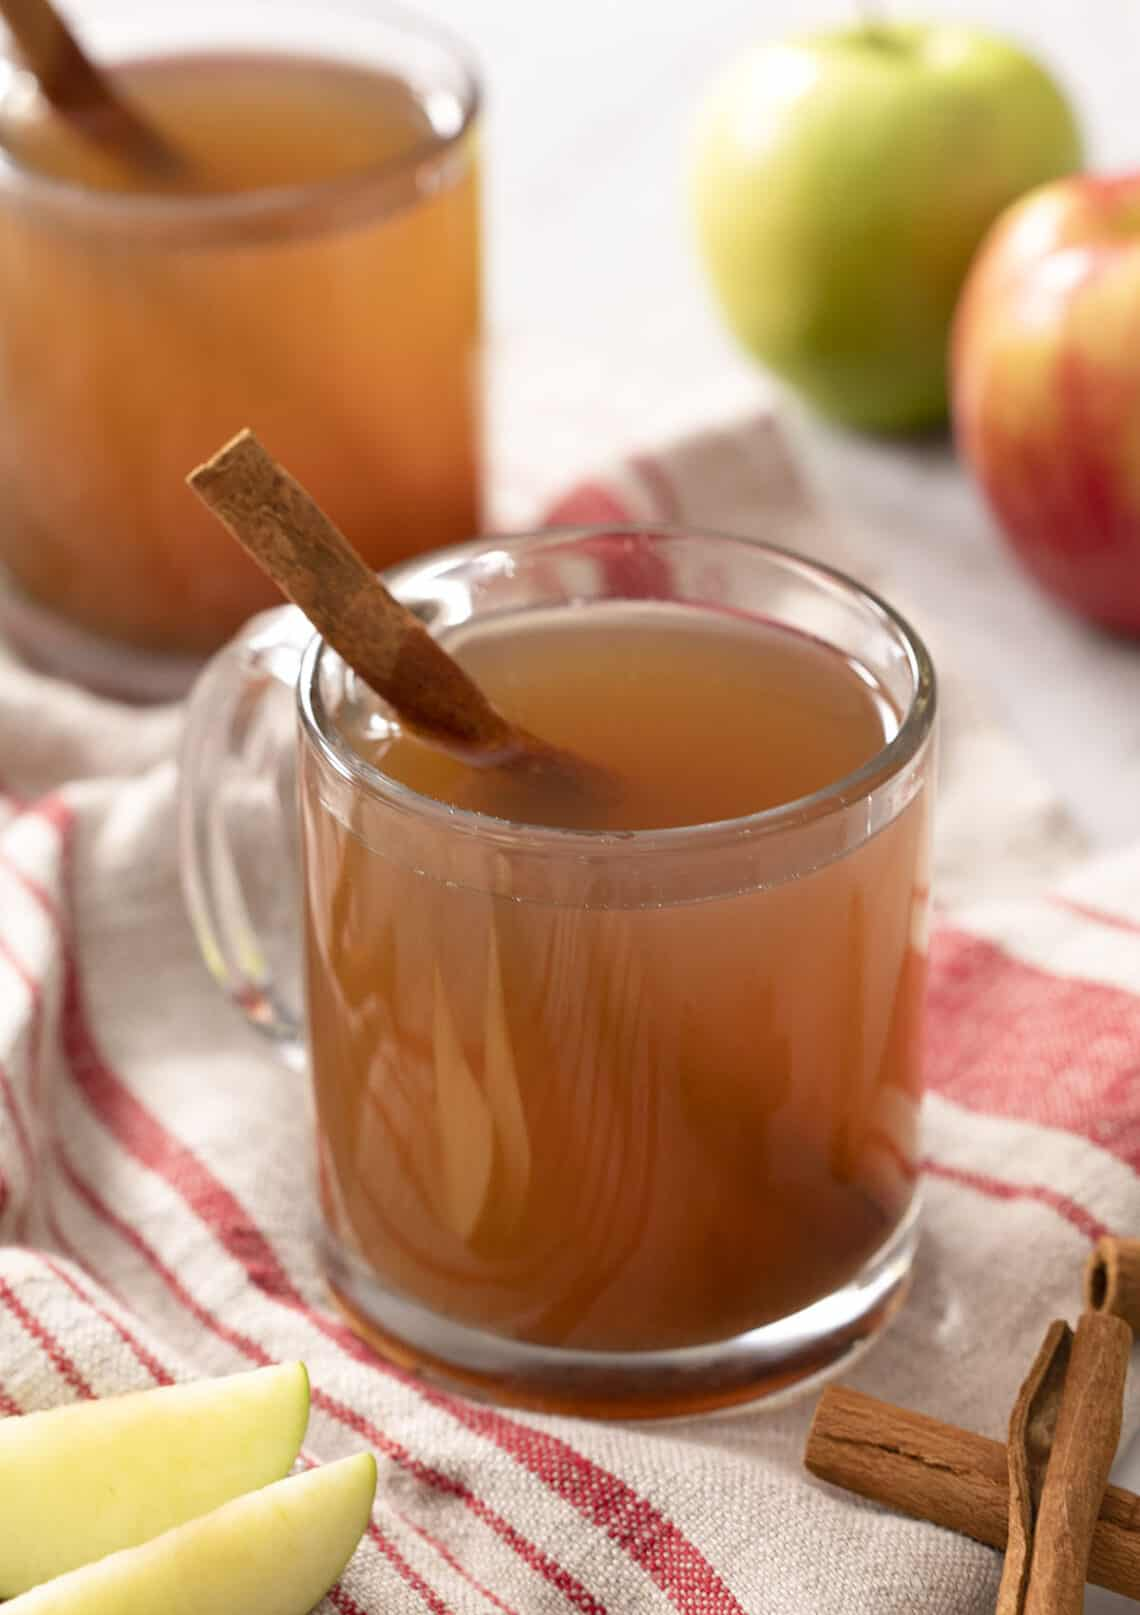 Two glasses of apple cider next to apples and cinnamon sticks.